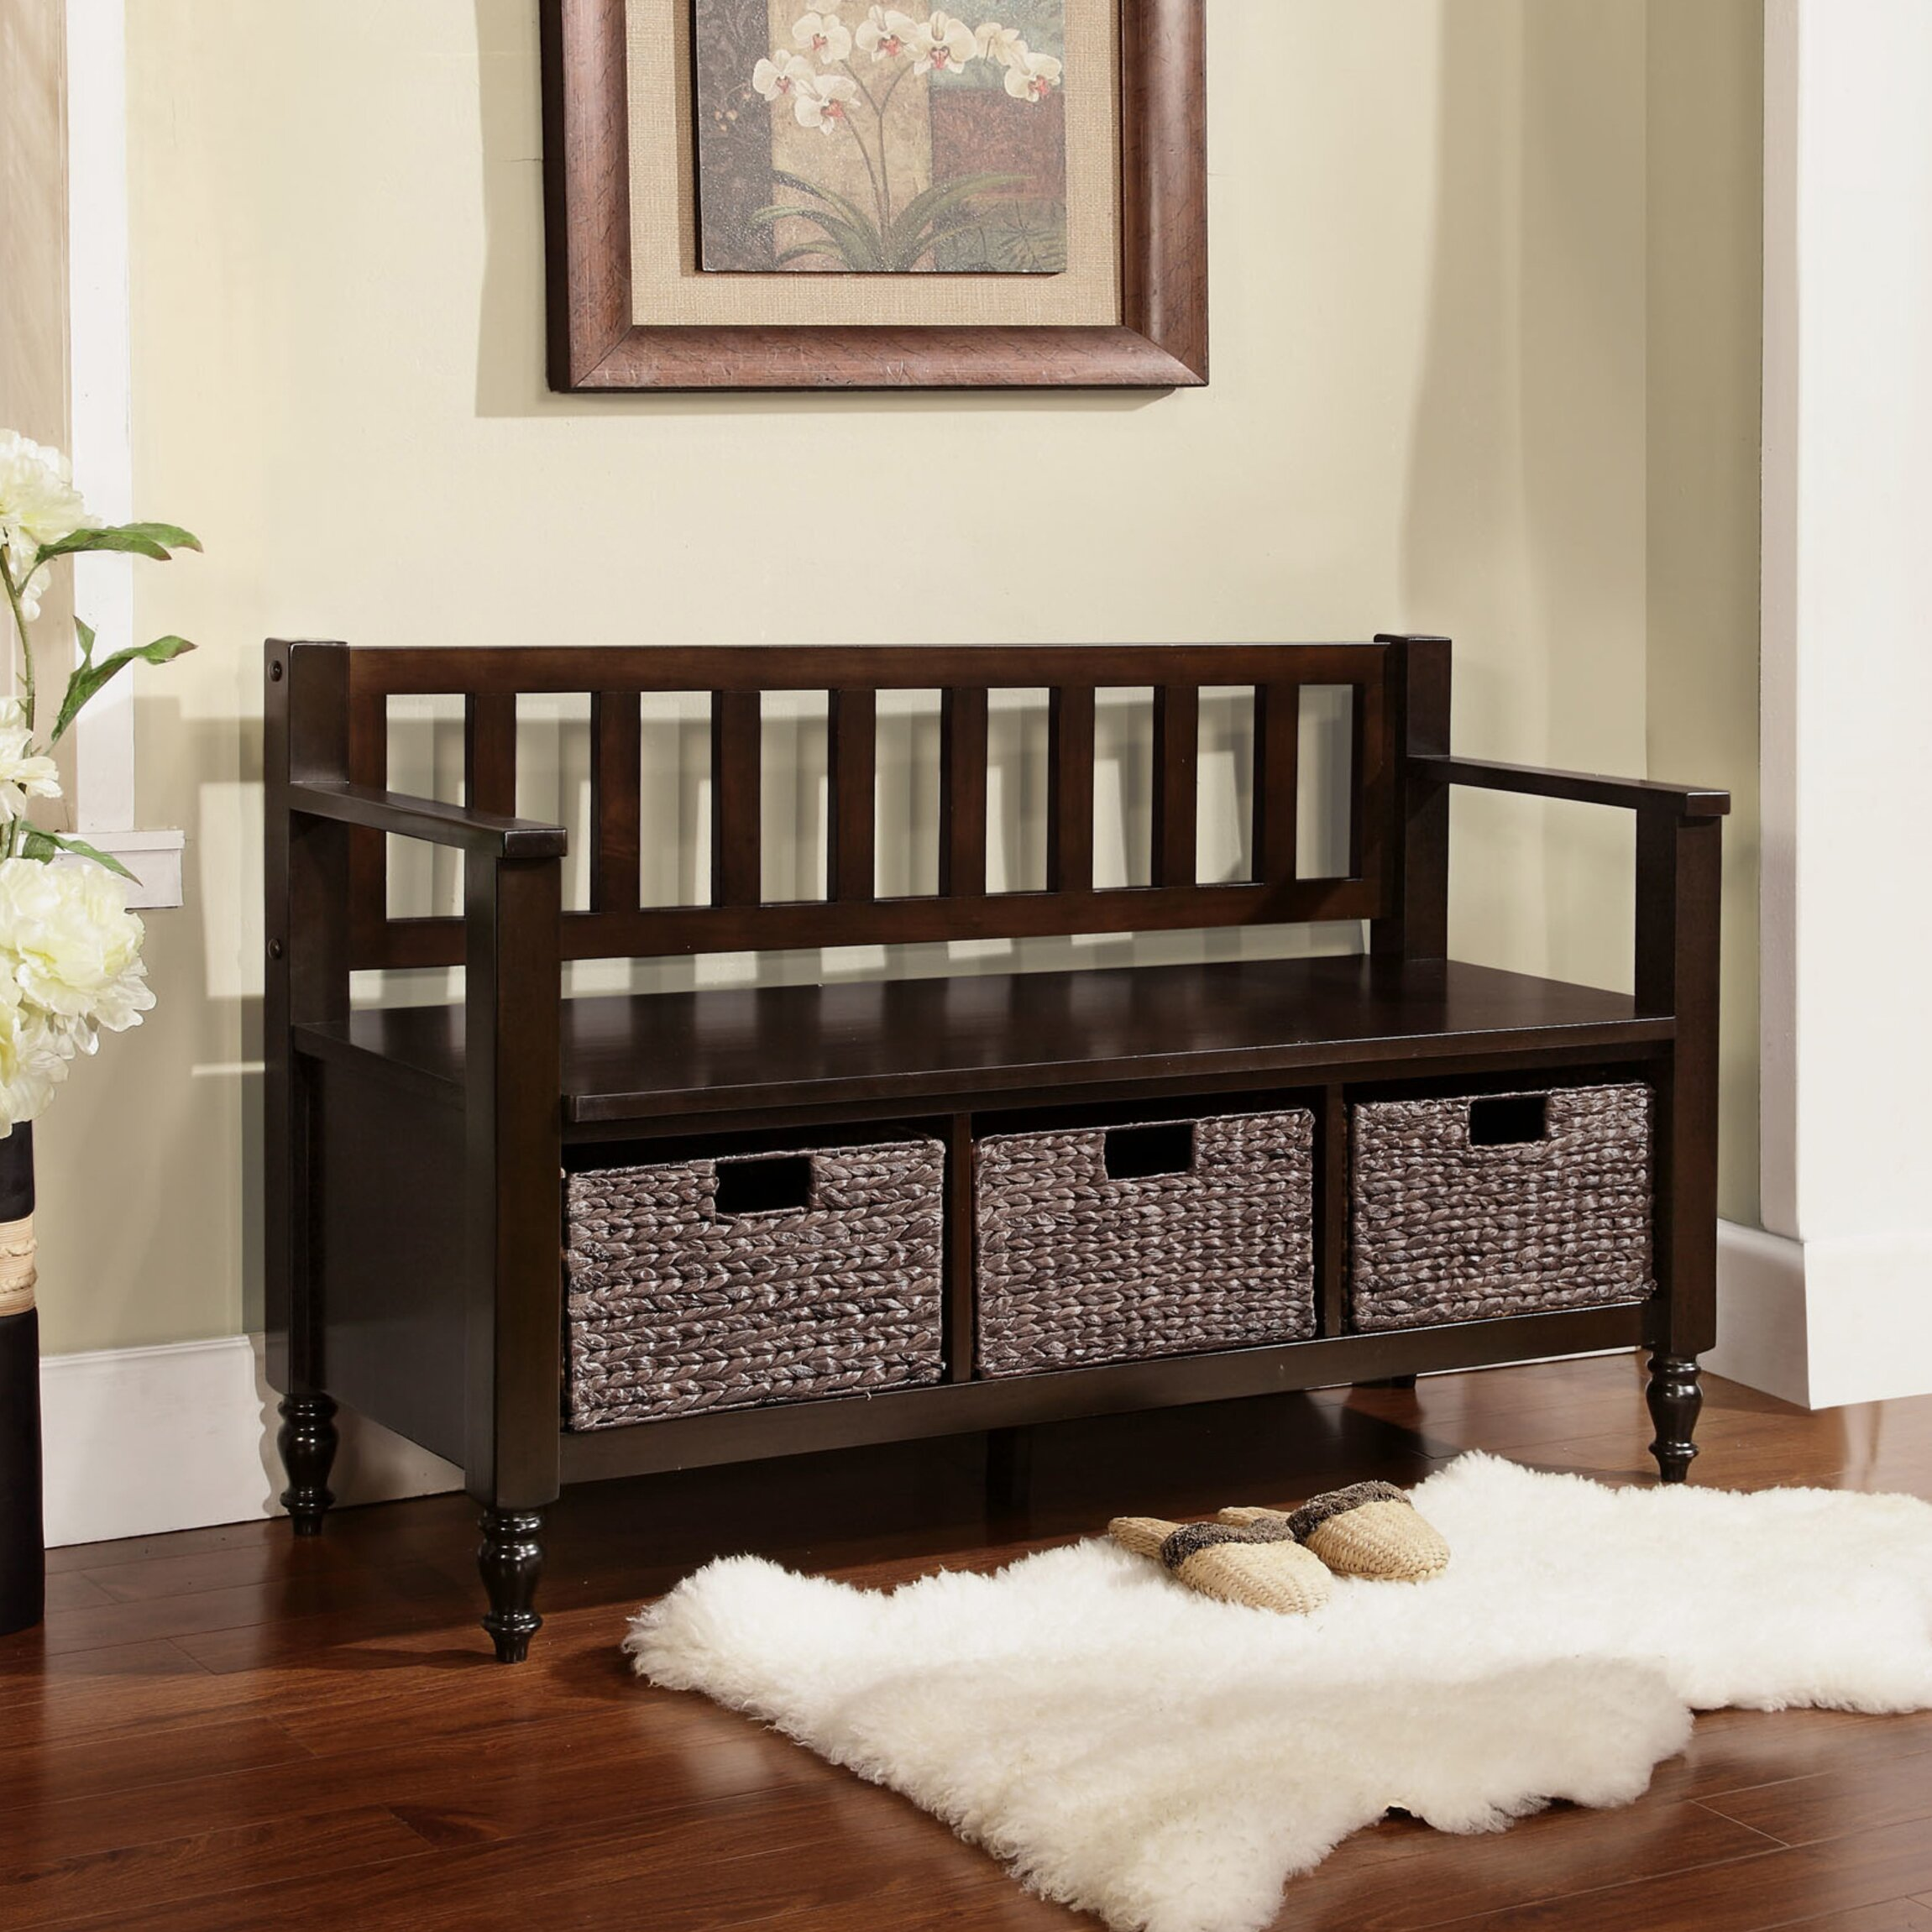 Simpli home dakota entryway bench reviews wayfair - Furniture for front entryway ...